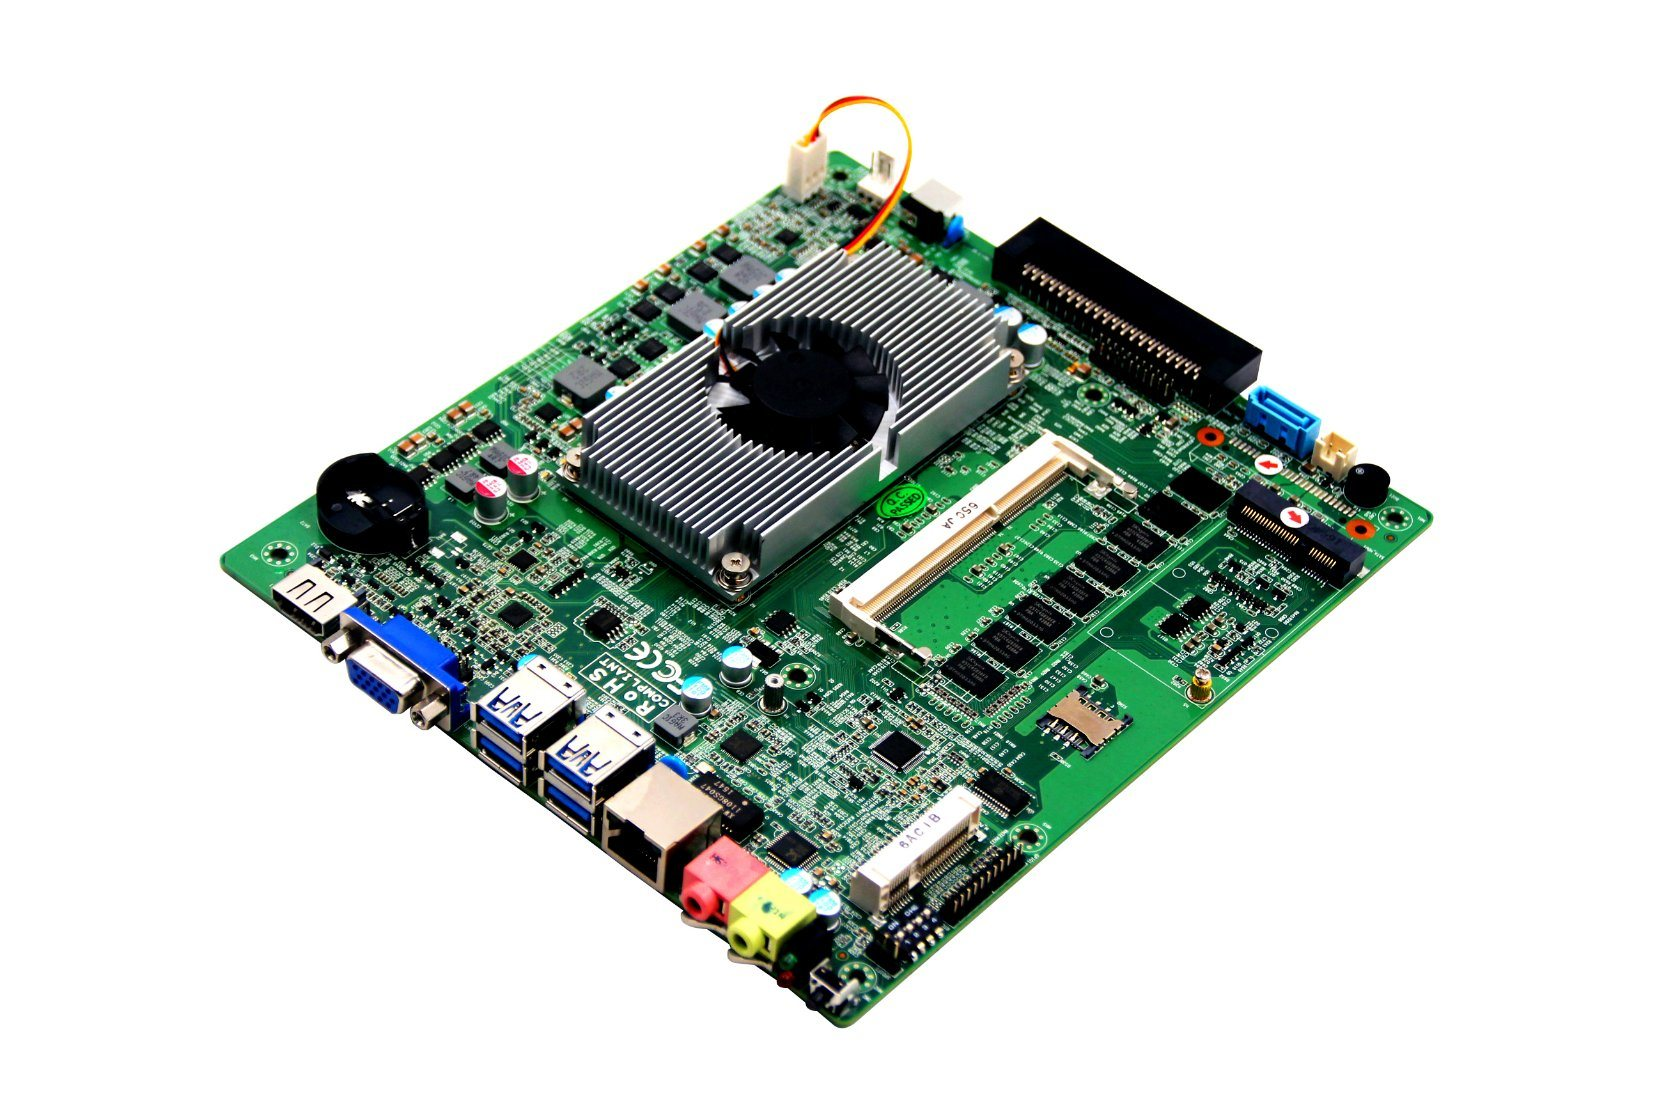 OPS Mini Itx Motherboard Haswell-U Embedded Mainboard with Mini-Pcie for 3G/I7-5500u Processor